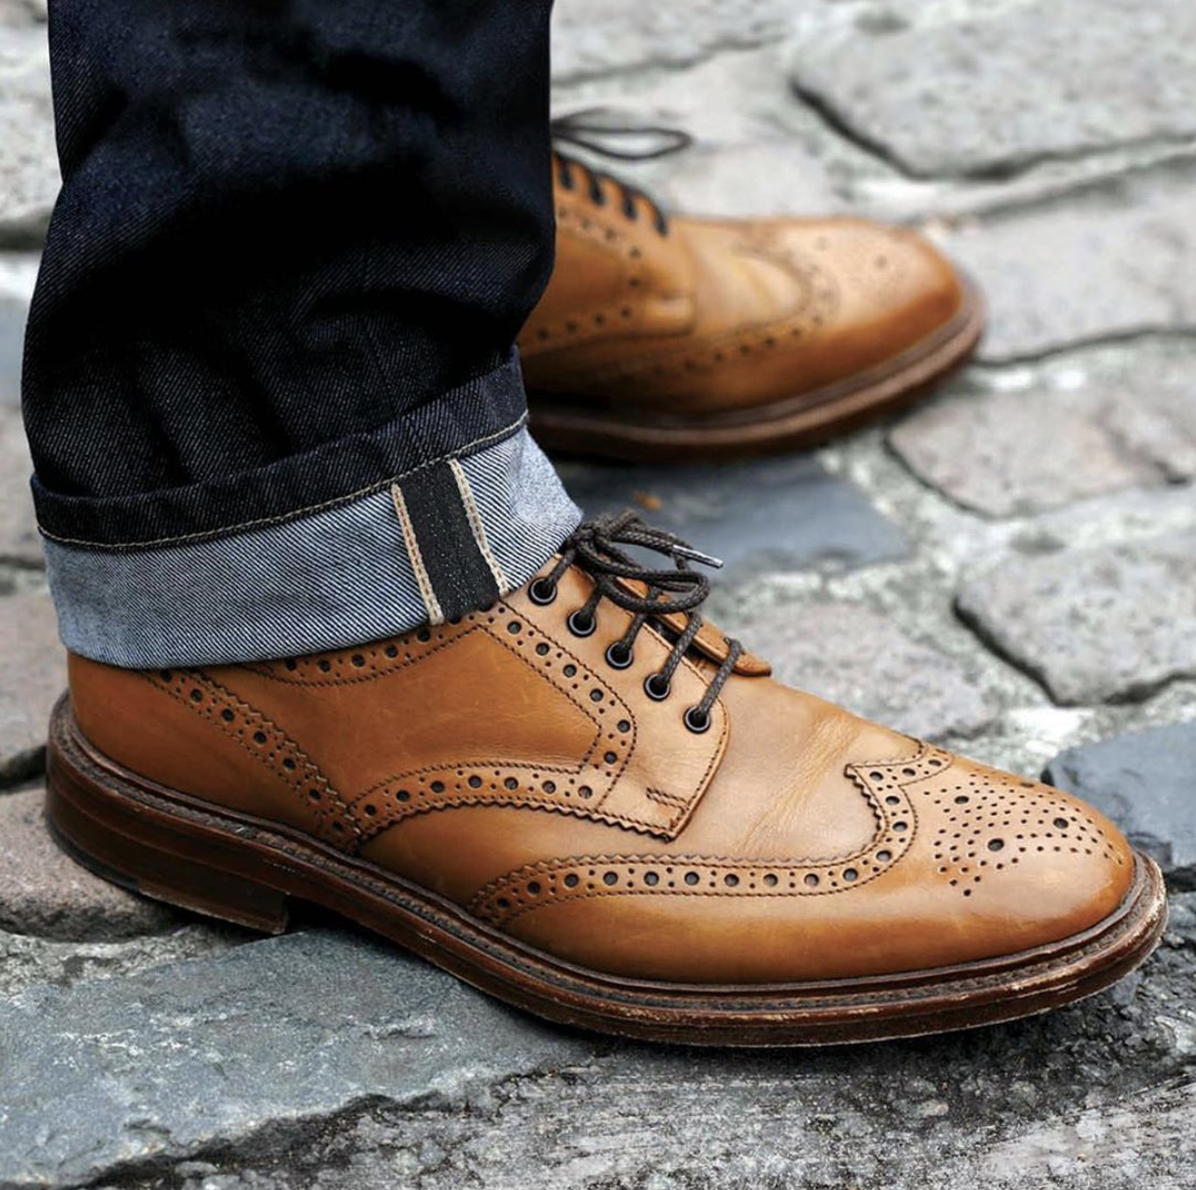 Loake Shoes image 1